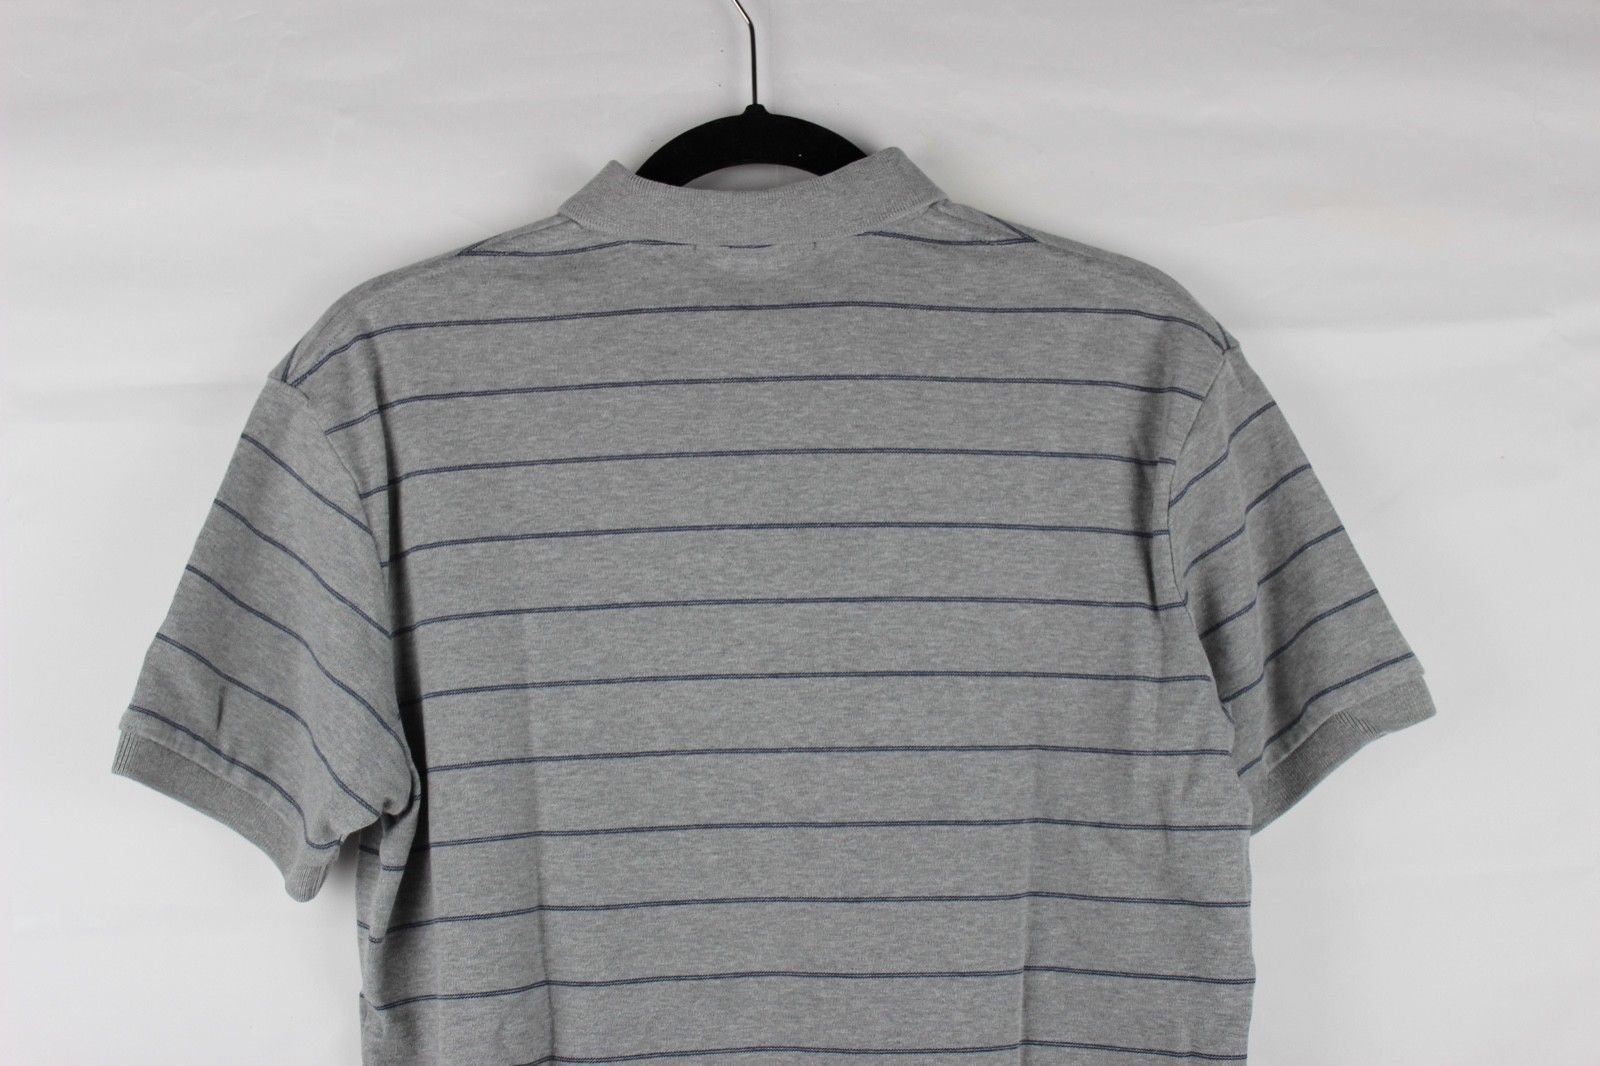 POLO by Ralph Lauren men's sport polo shirt cotton gray striped classic size S